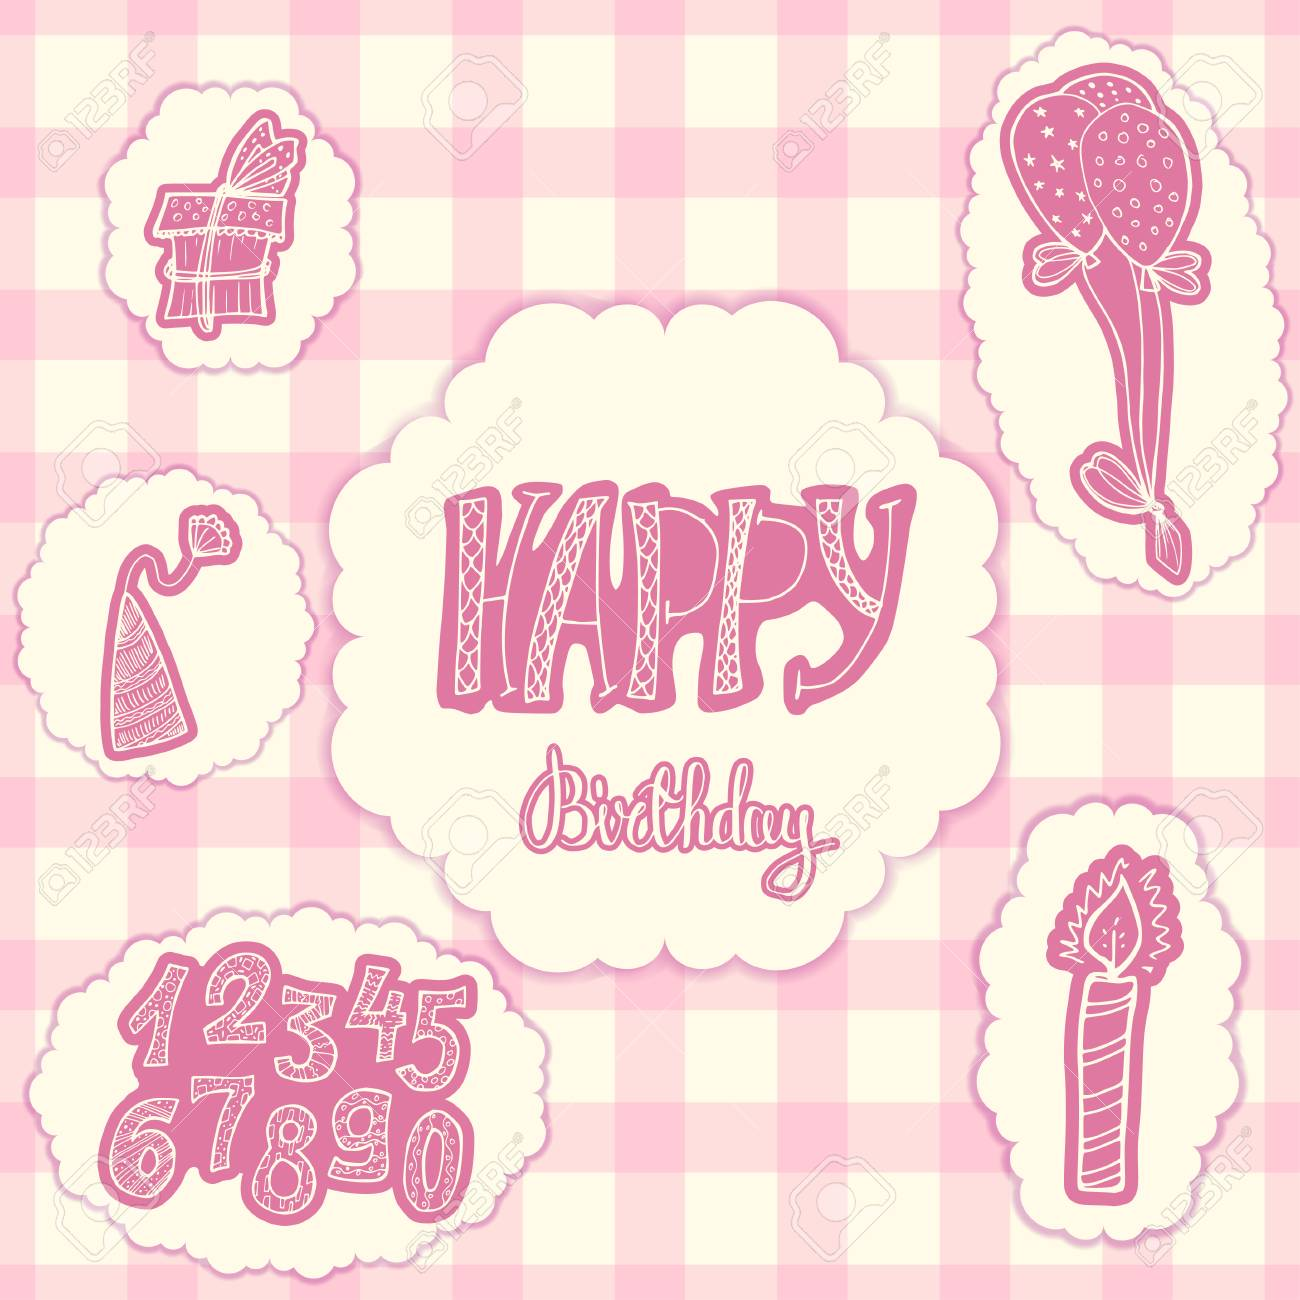 Happy Birthday Doodle Set Of Decorations For Gift Card Pink Kit Girls